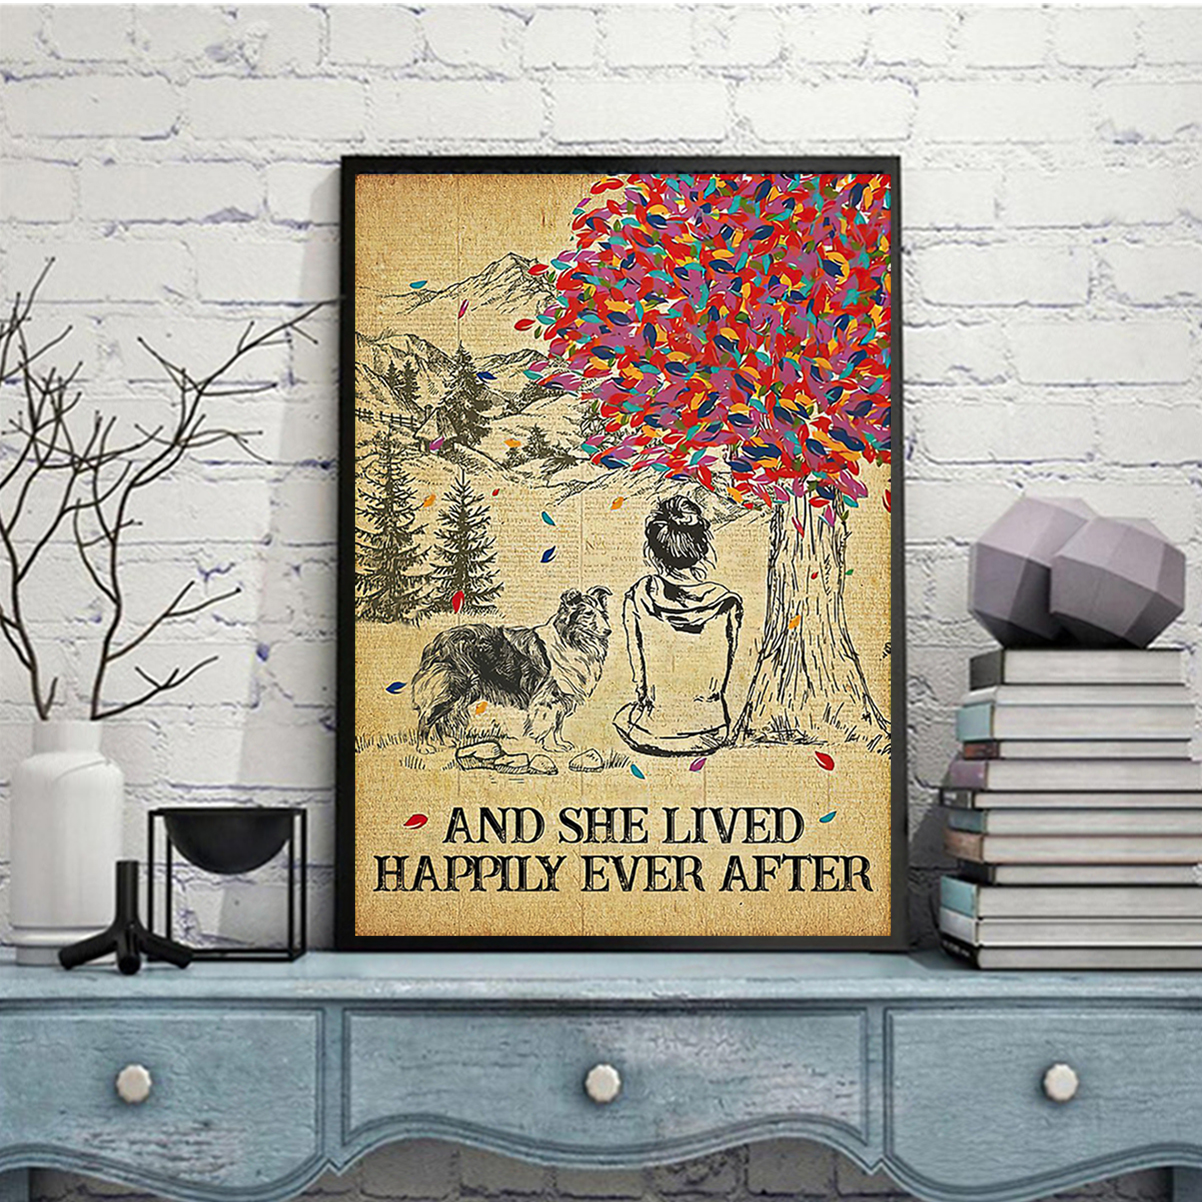 Shetland sheepdog and she lived happily ever after poster A2